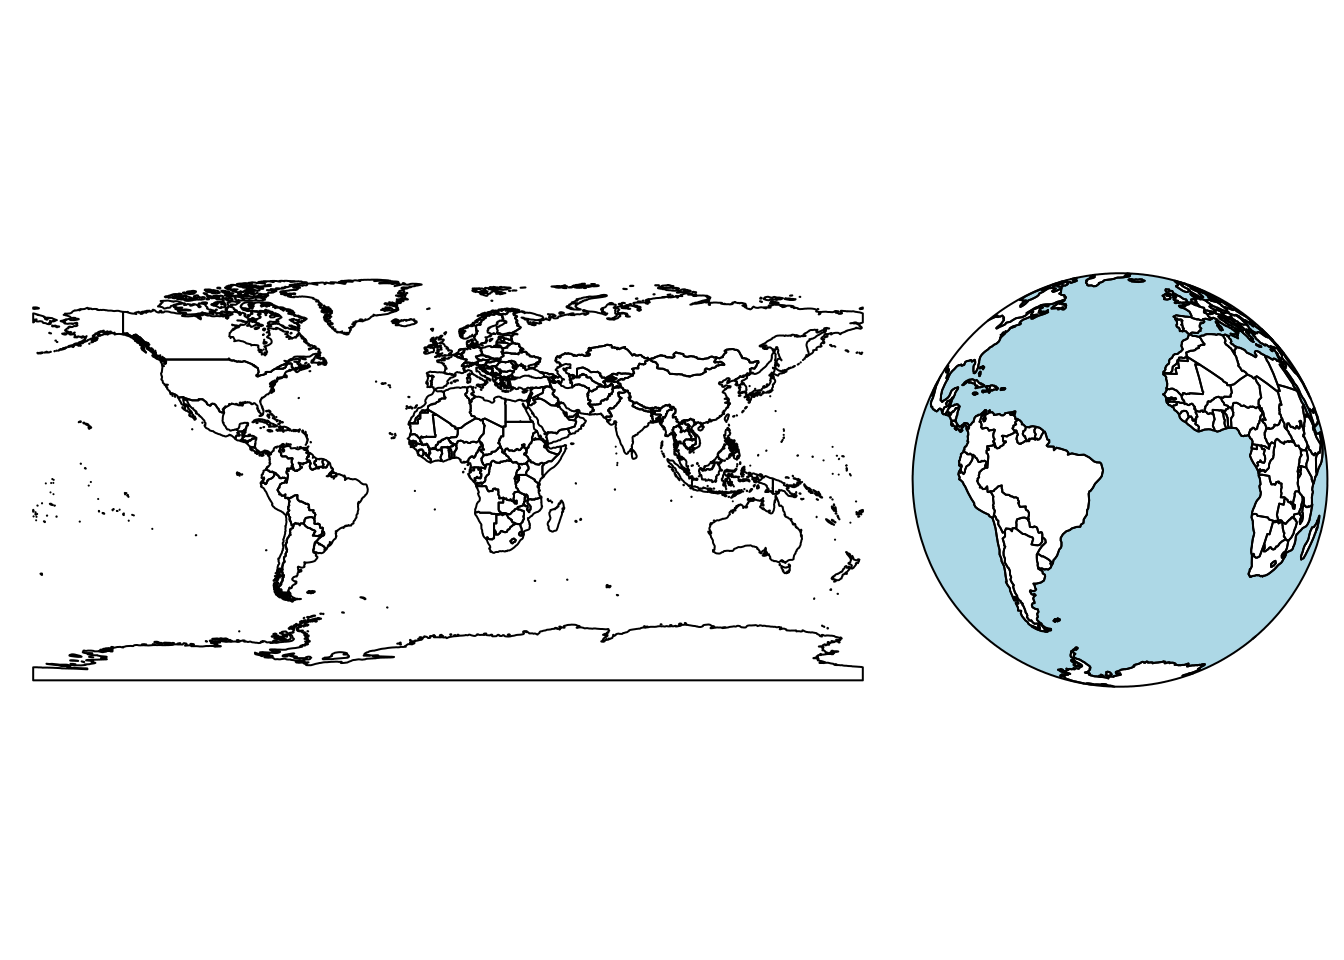 Earth country boundaries; left: mapping long/lat to x and y; right: as seen from space